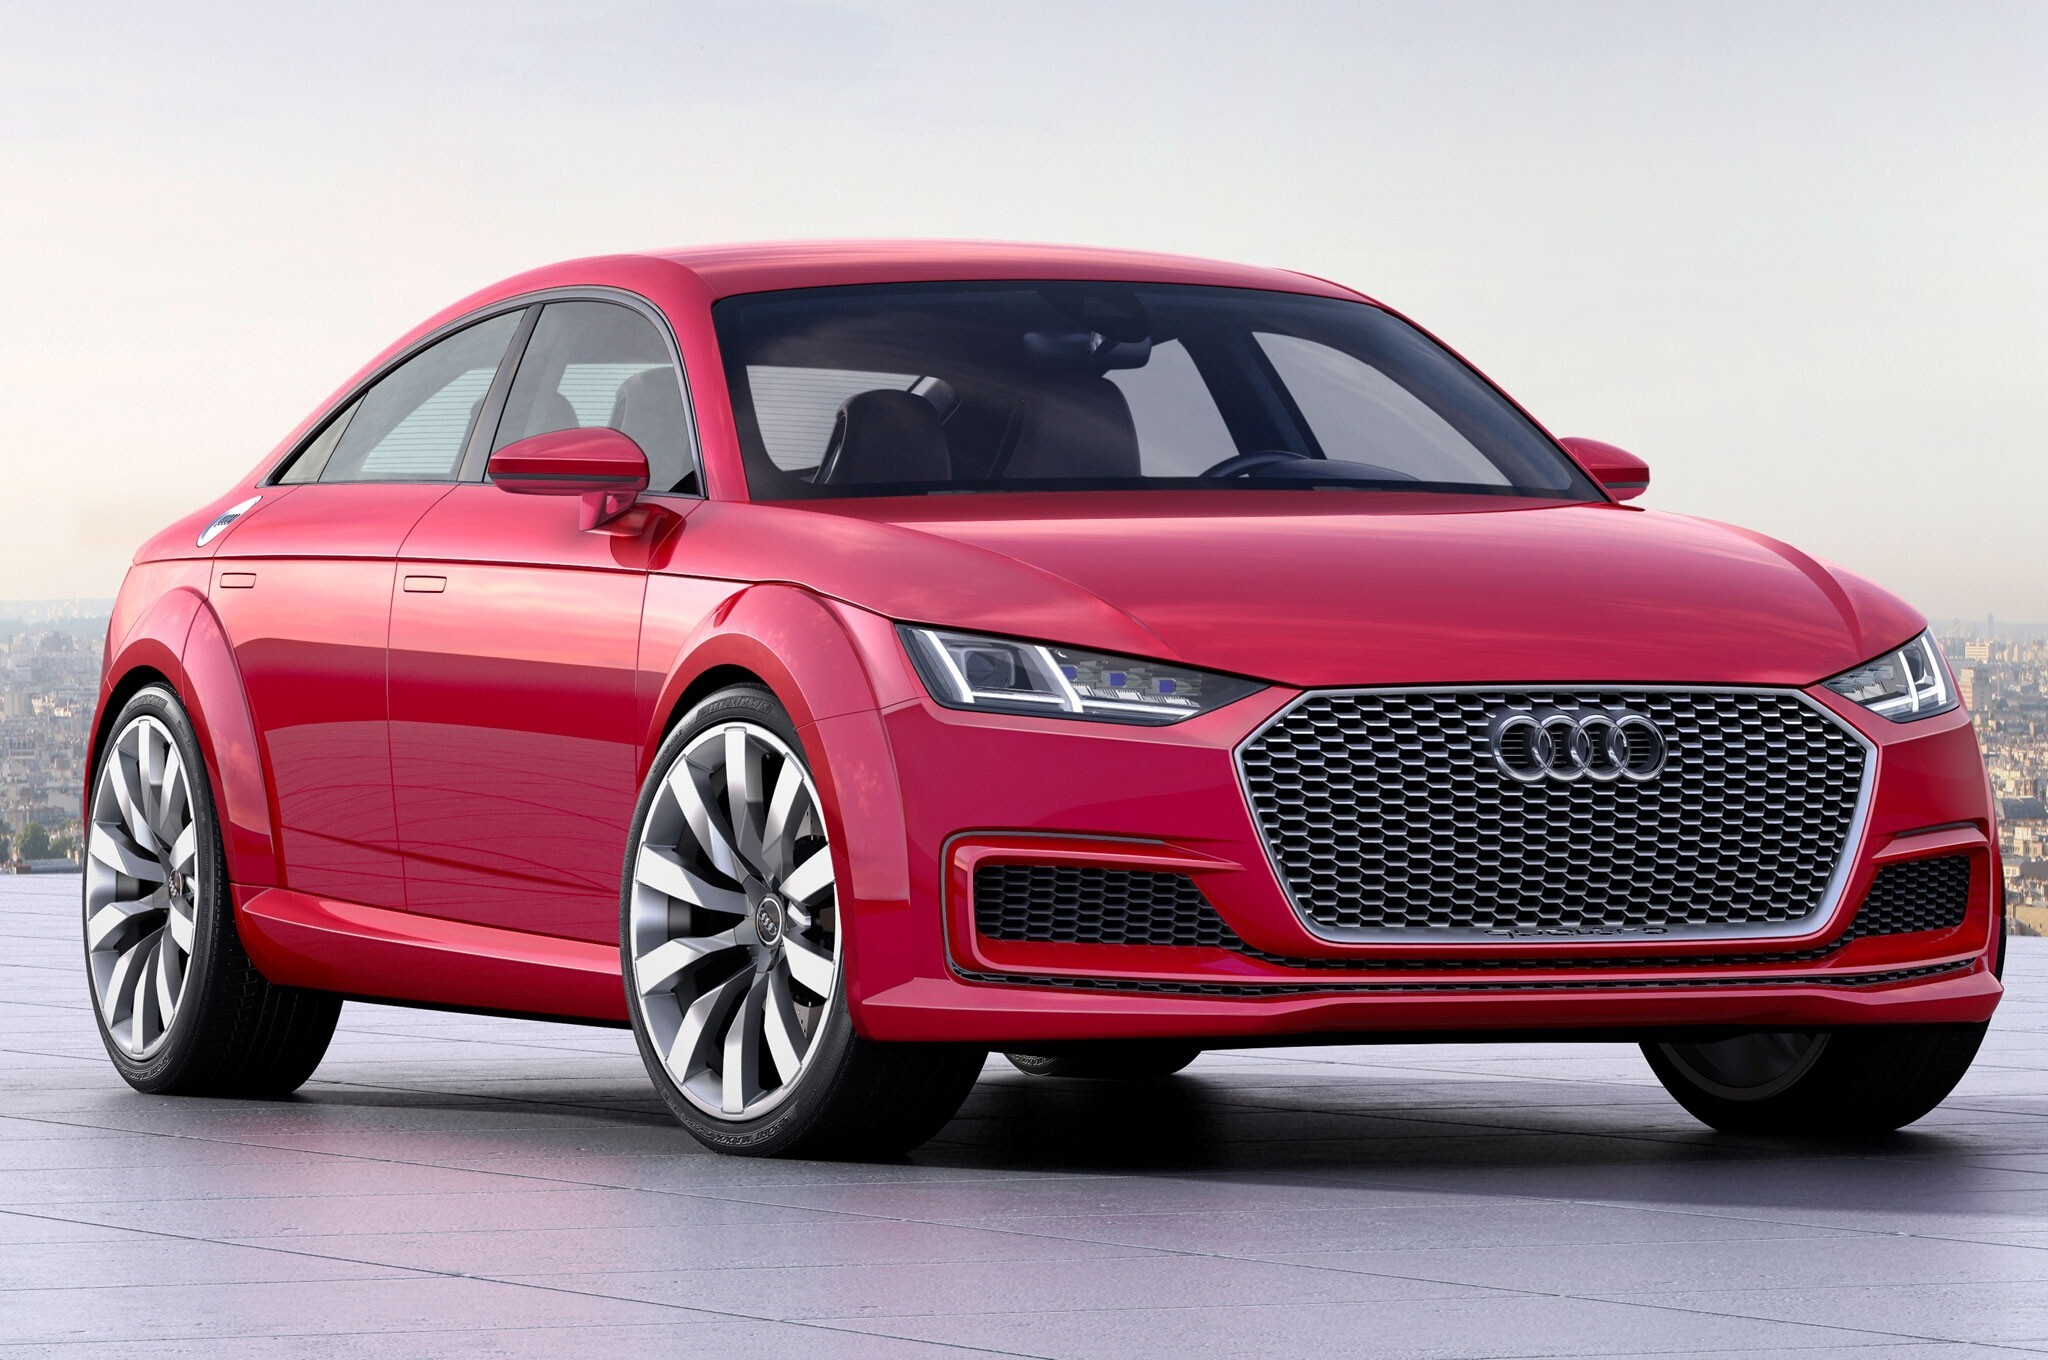 New Red Latest Audi R8 E Tron Prototype Launch Car Wallpapers Hd